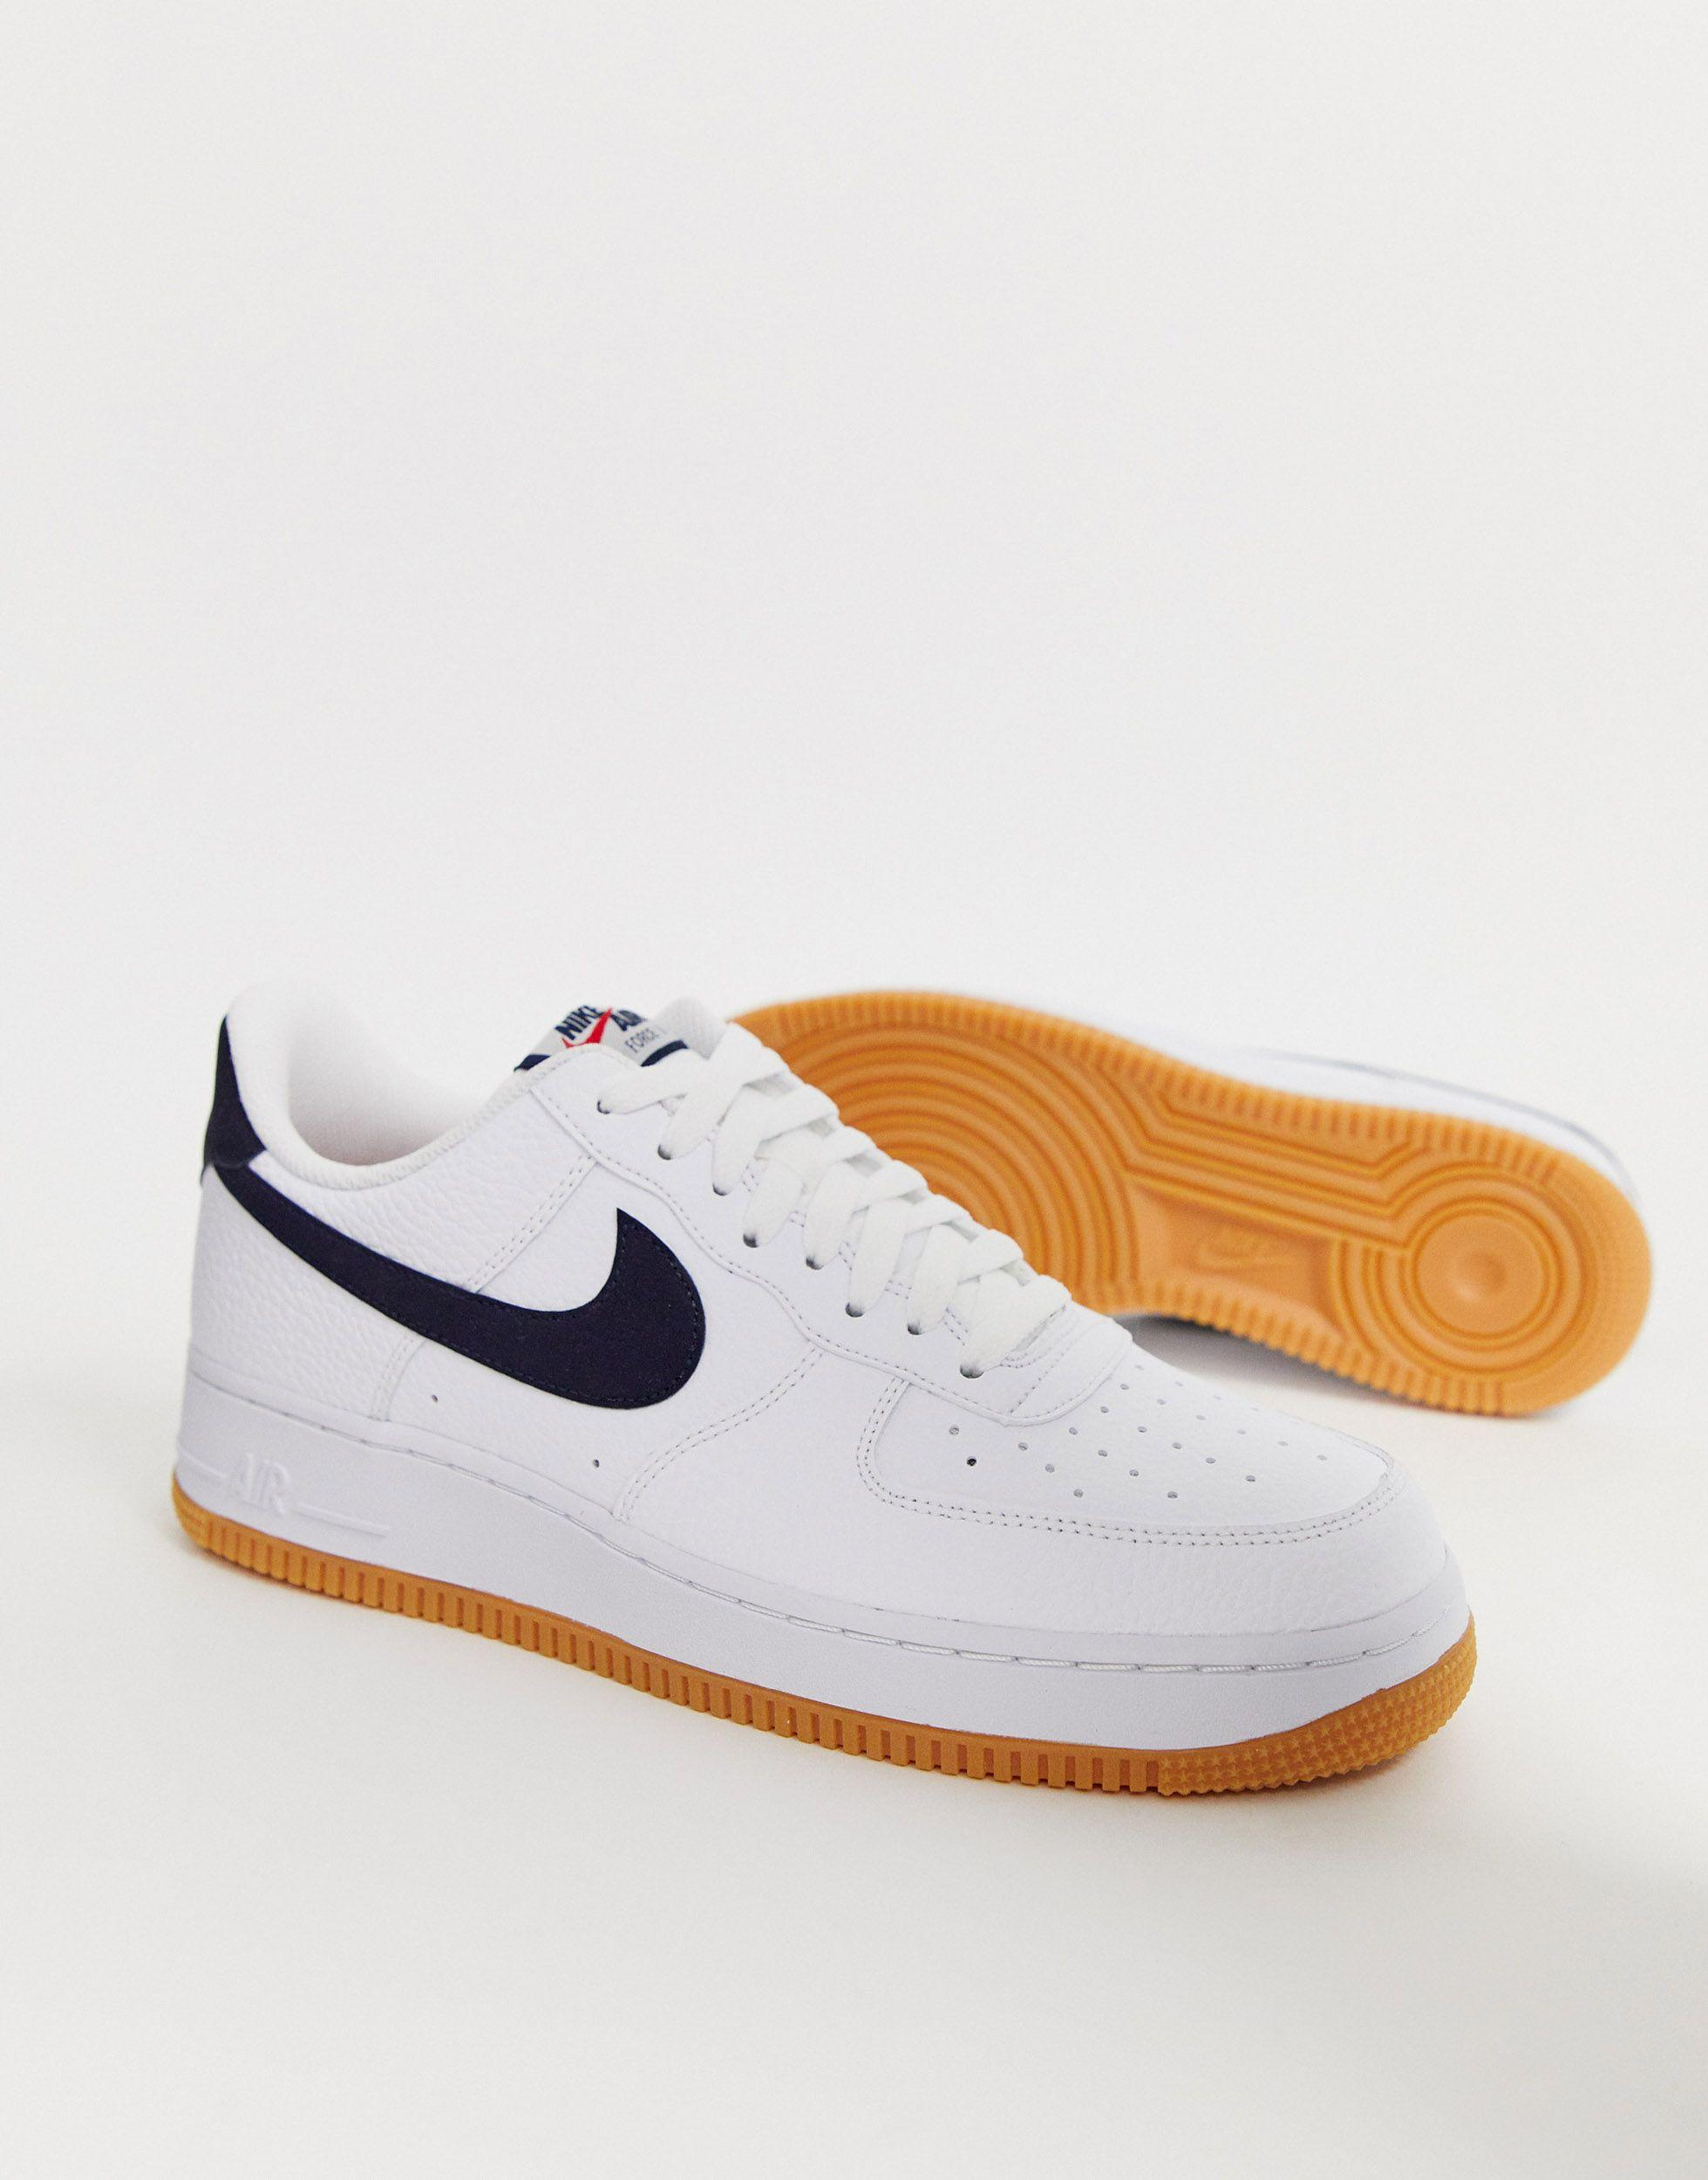 Sneakers With Navy Swoosh And Gum Sole